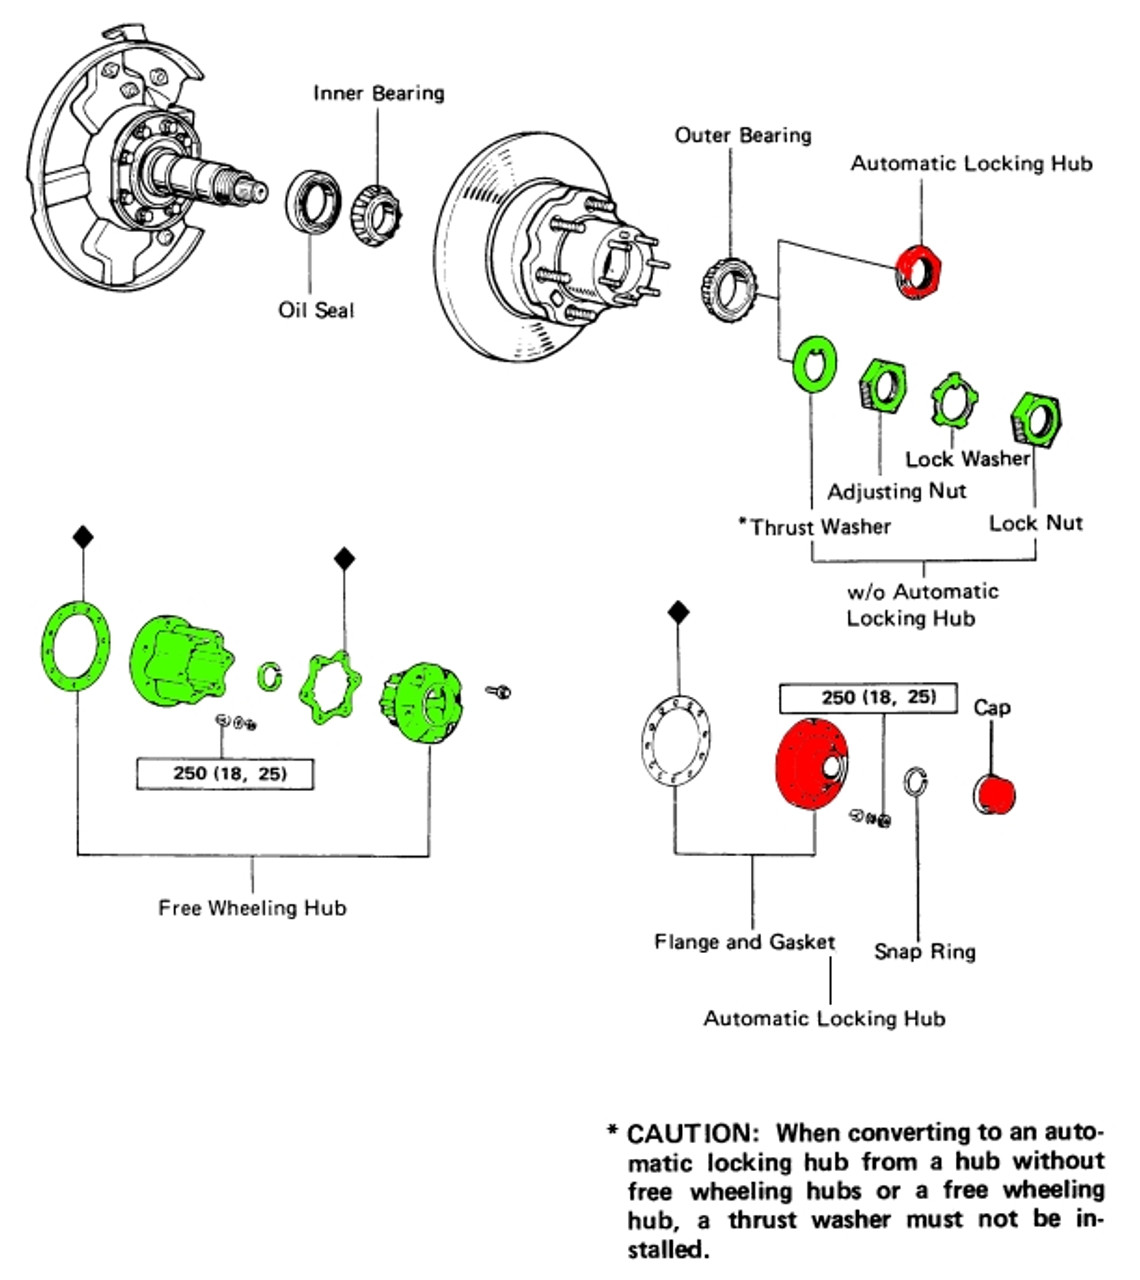 Parts in green are included.  Parts in red will be removed and not used.